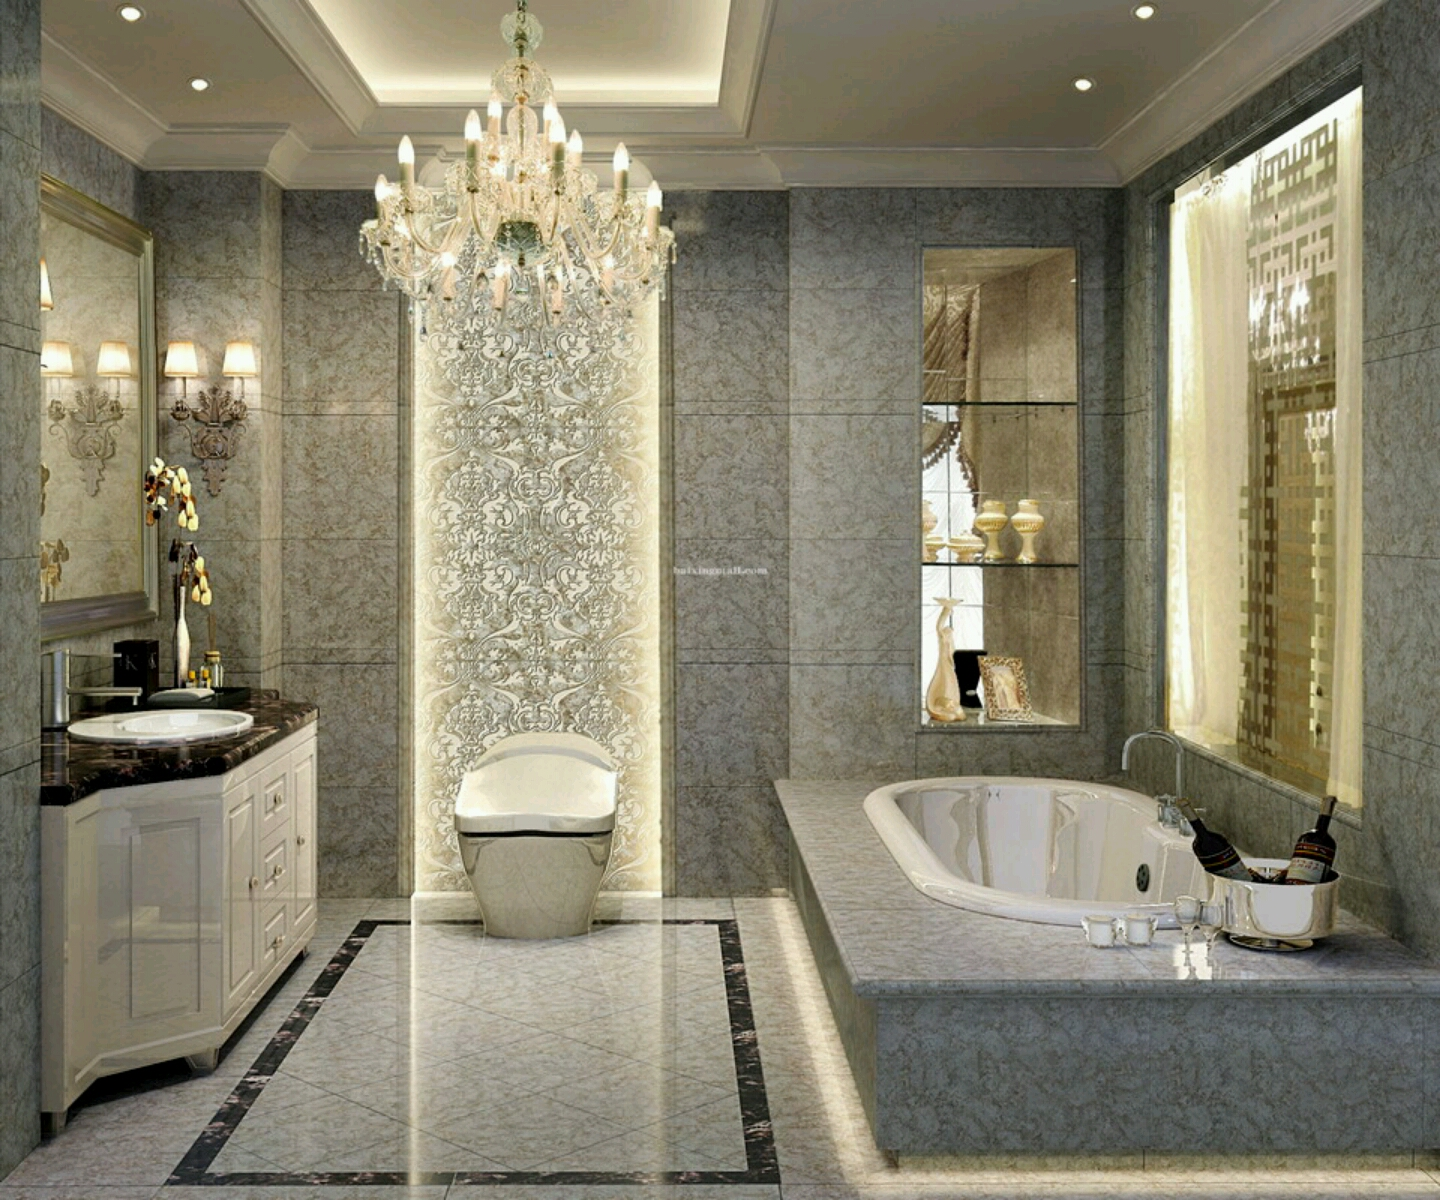 Luxury Bathroom Design 1440 x 1200